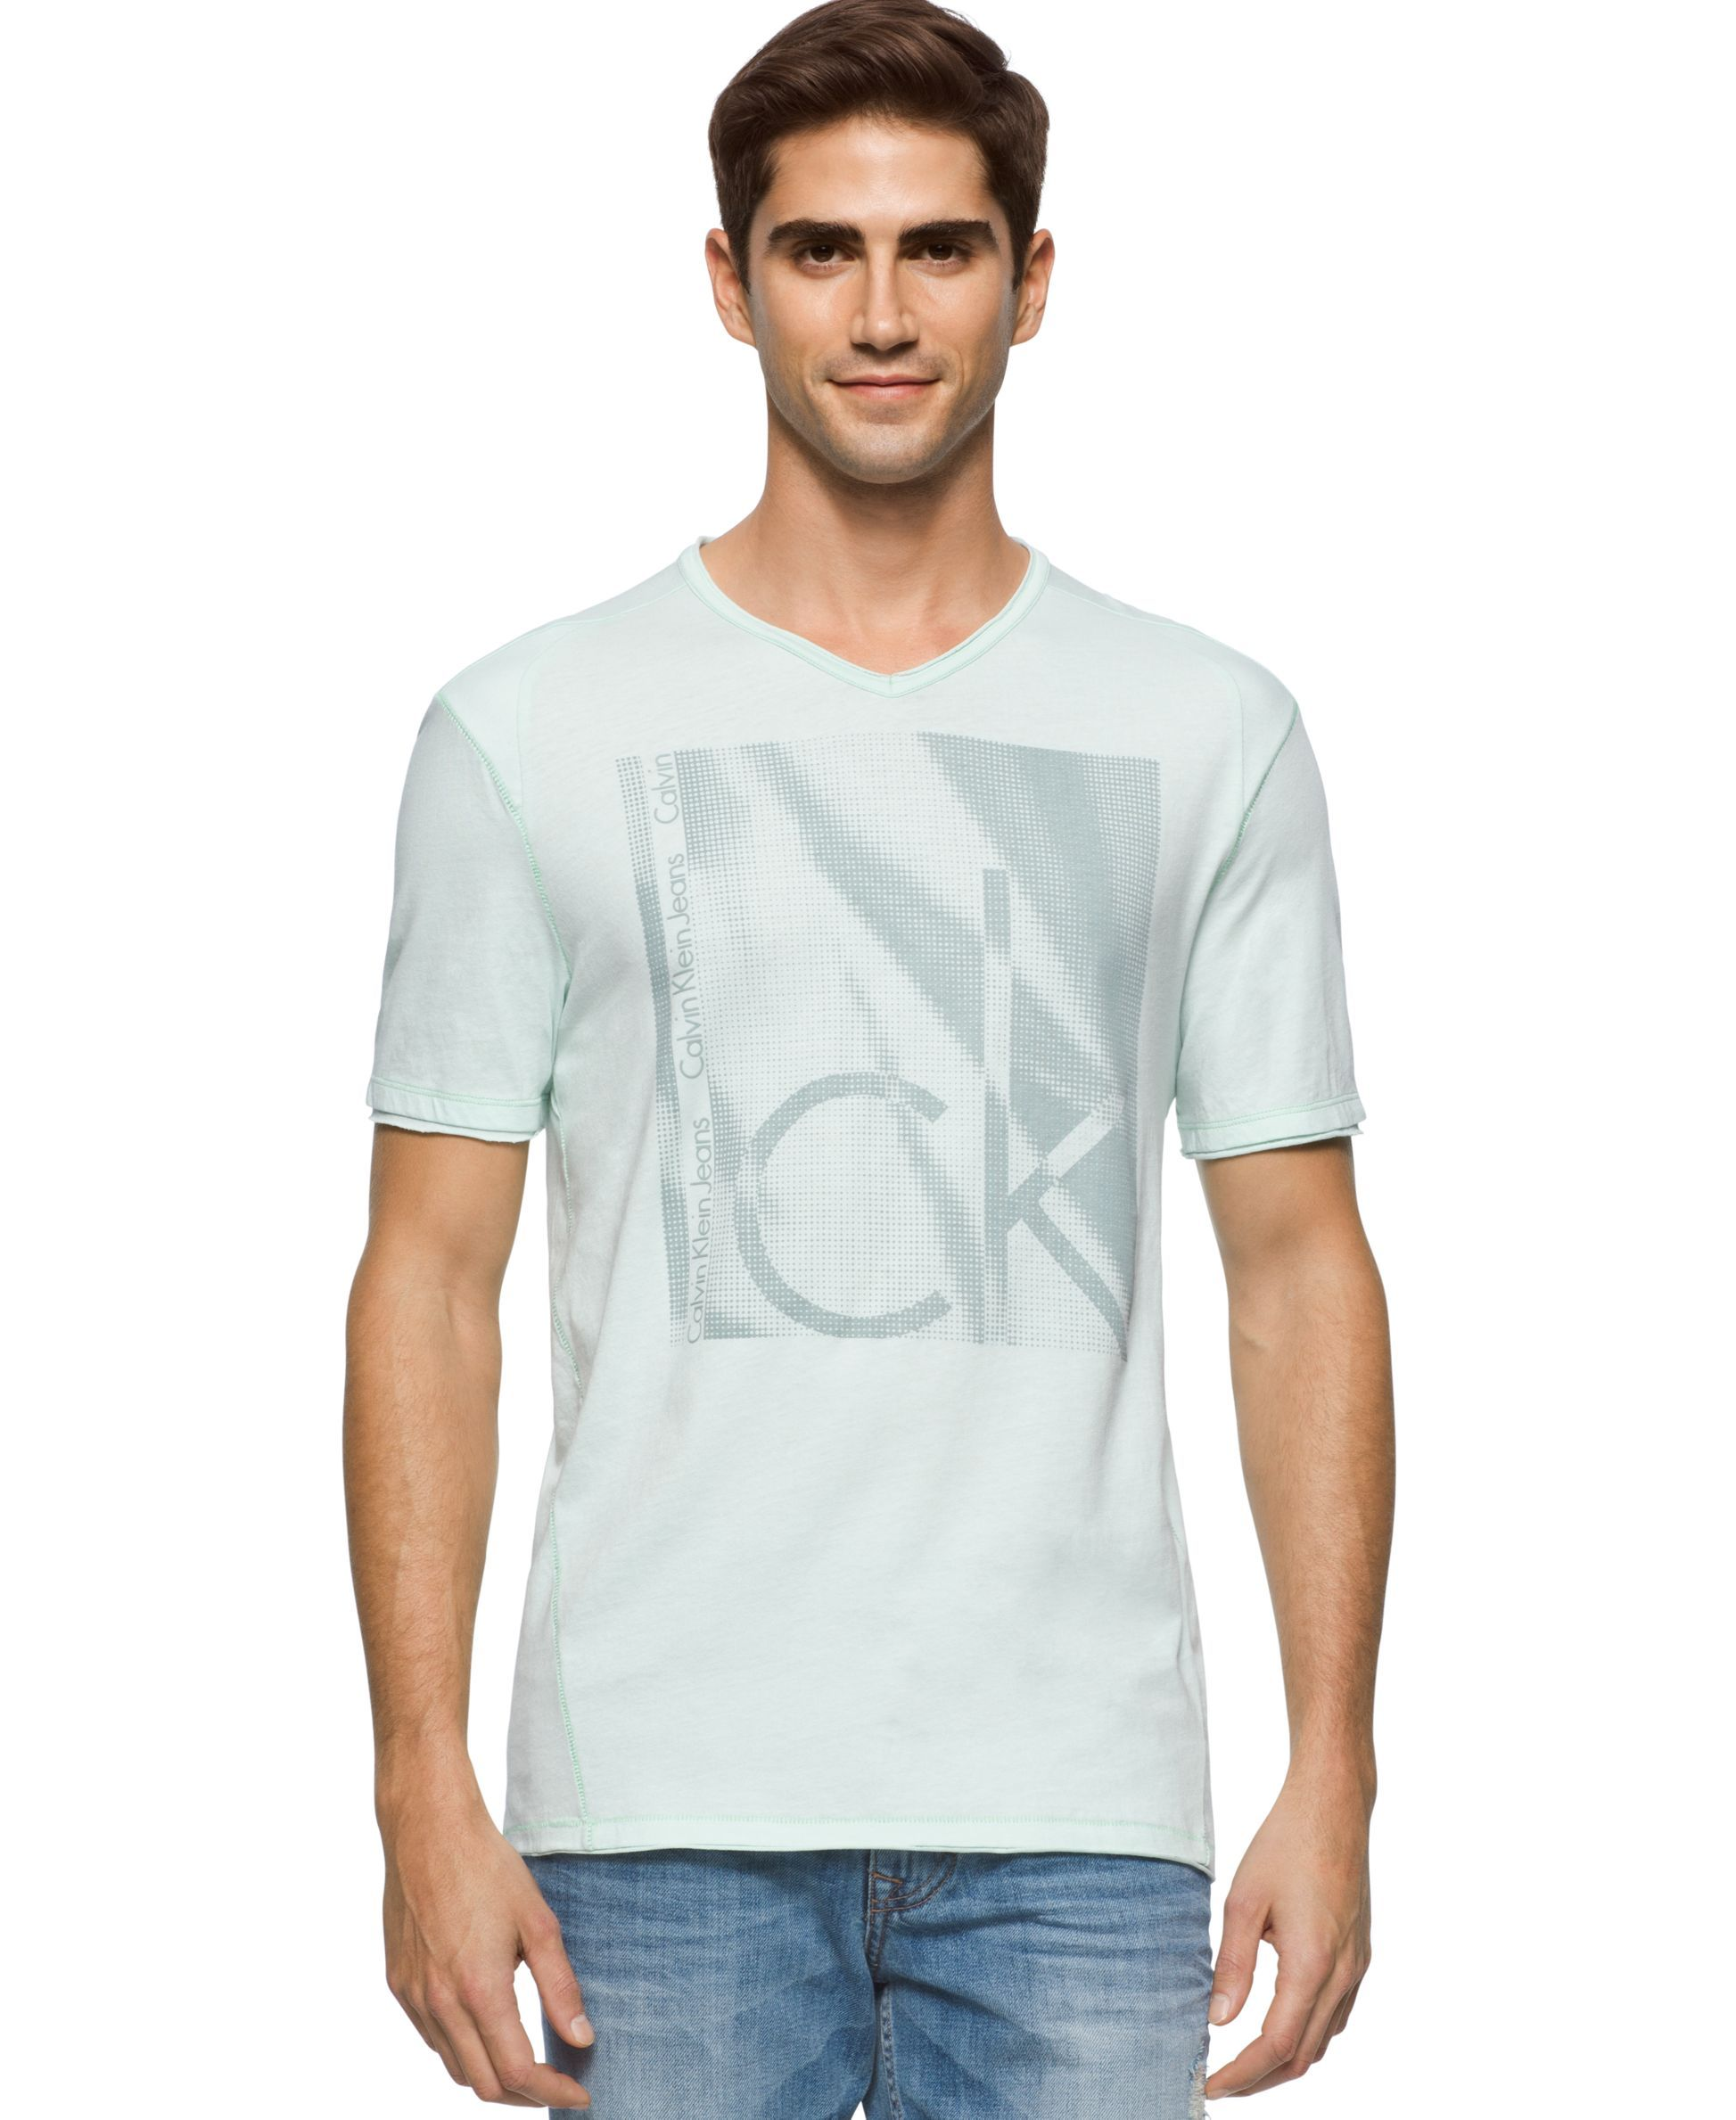 34539589eef0 Calvin Klein Jeans Men's Ck Box Texture Graphic-Print Logo V-Neck T-Shirt